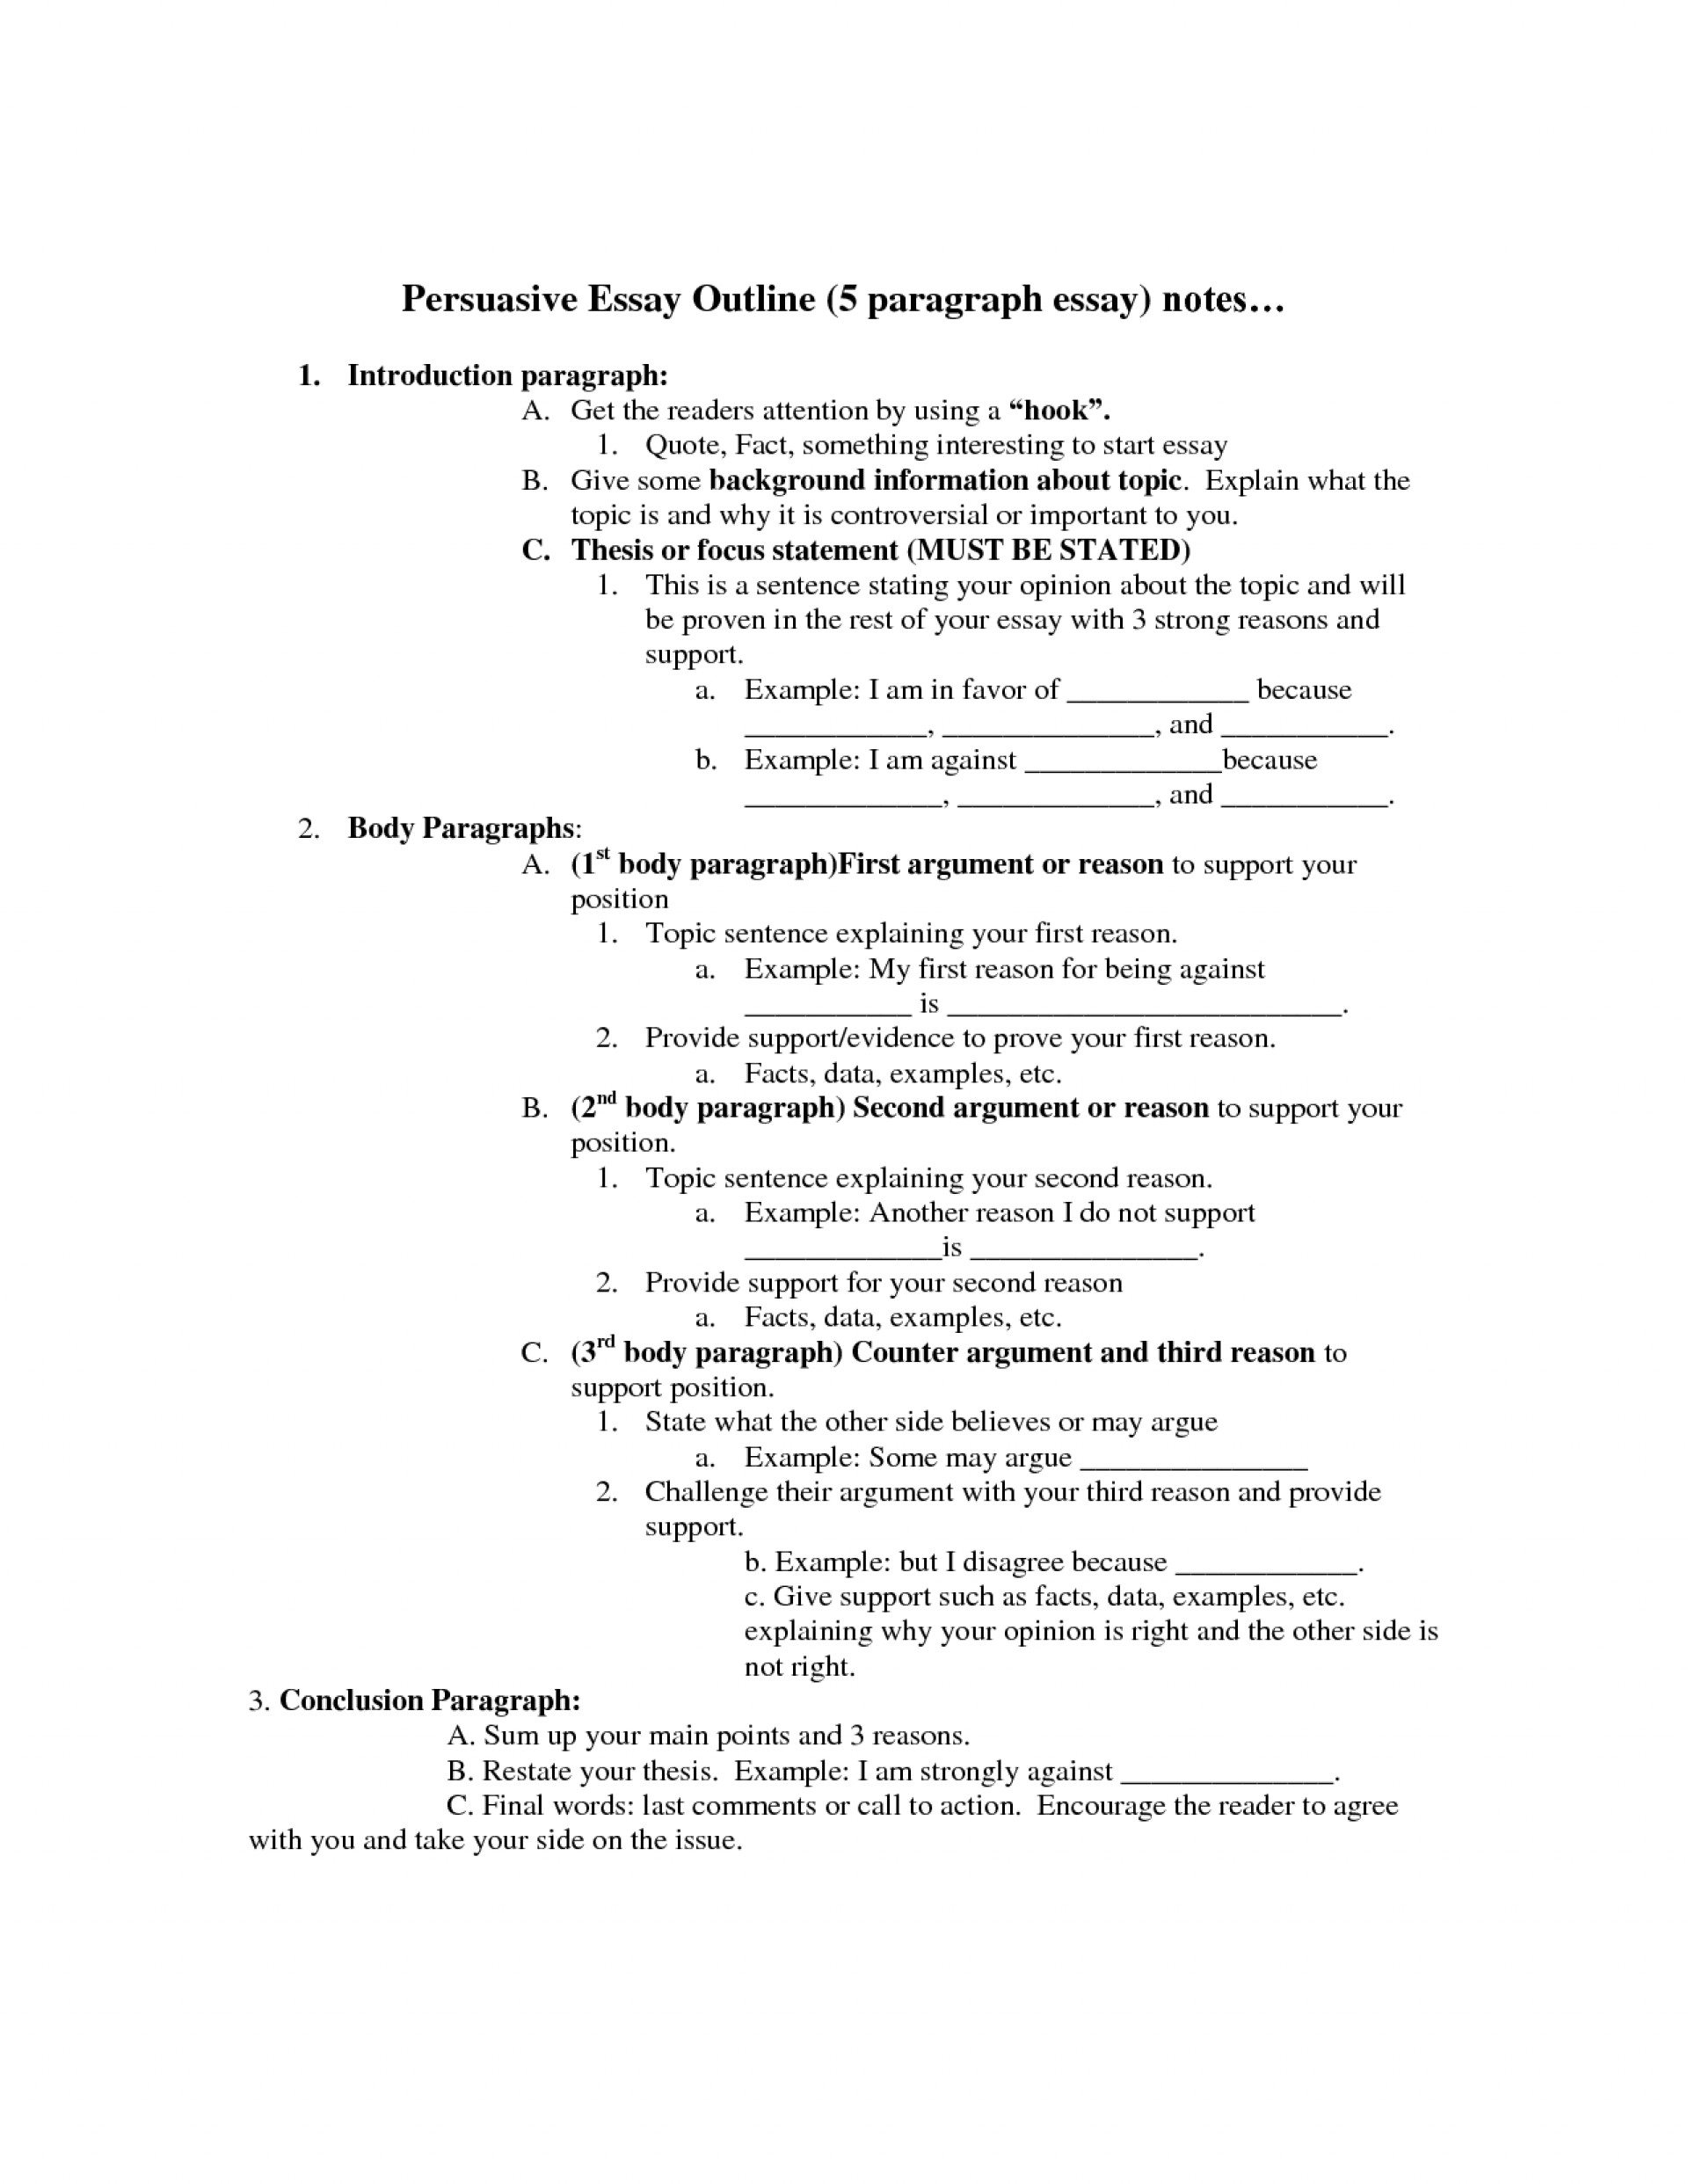 006 Persuasive Essay Outline Unbelievable Format Middle School Template High Pdf 1920